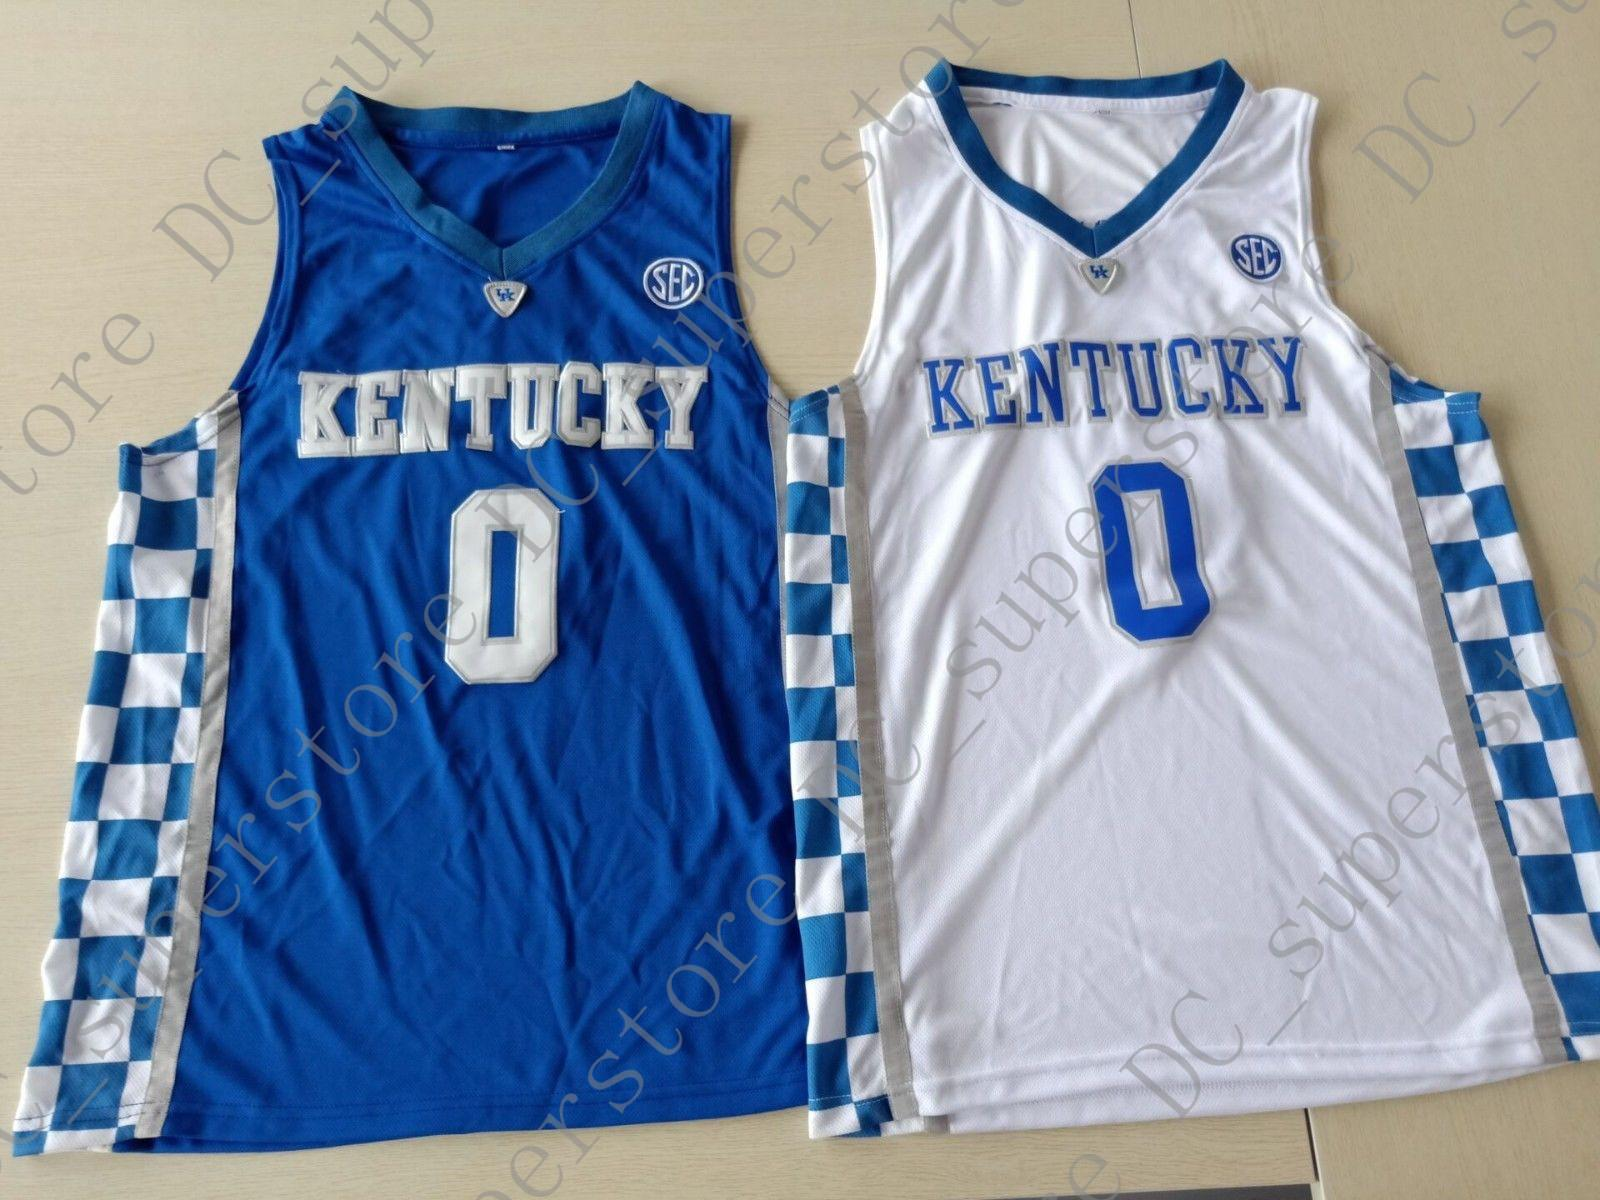 competitive price d383c ed7e3 Cheap custom Kentucky Wildcats De Aaron Fox #0 College Basketball Jersey  Stitched Customize any name number MEN WOMEN YOUTH JERSEY XS-5XL